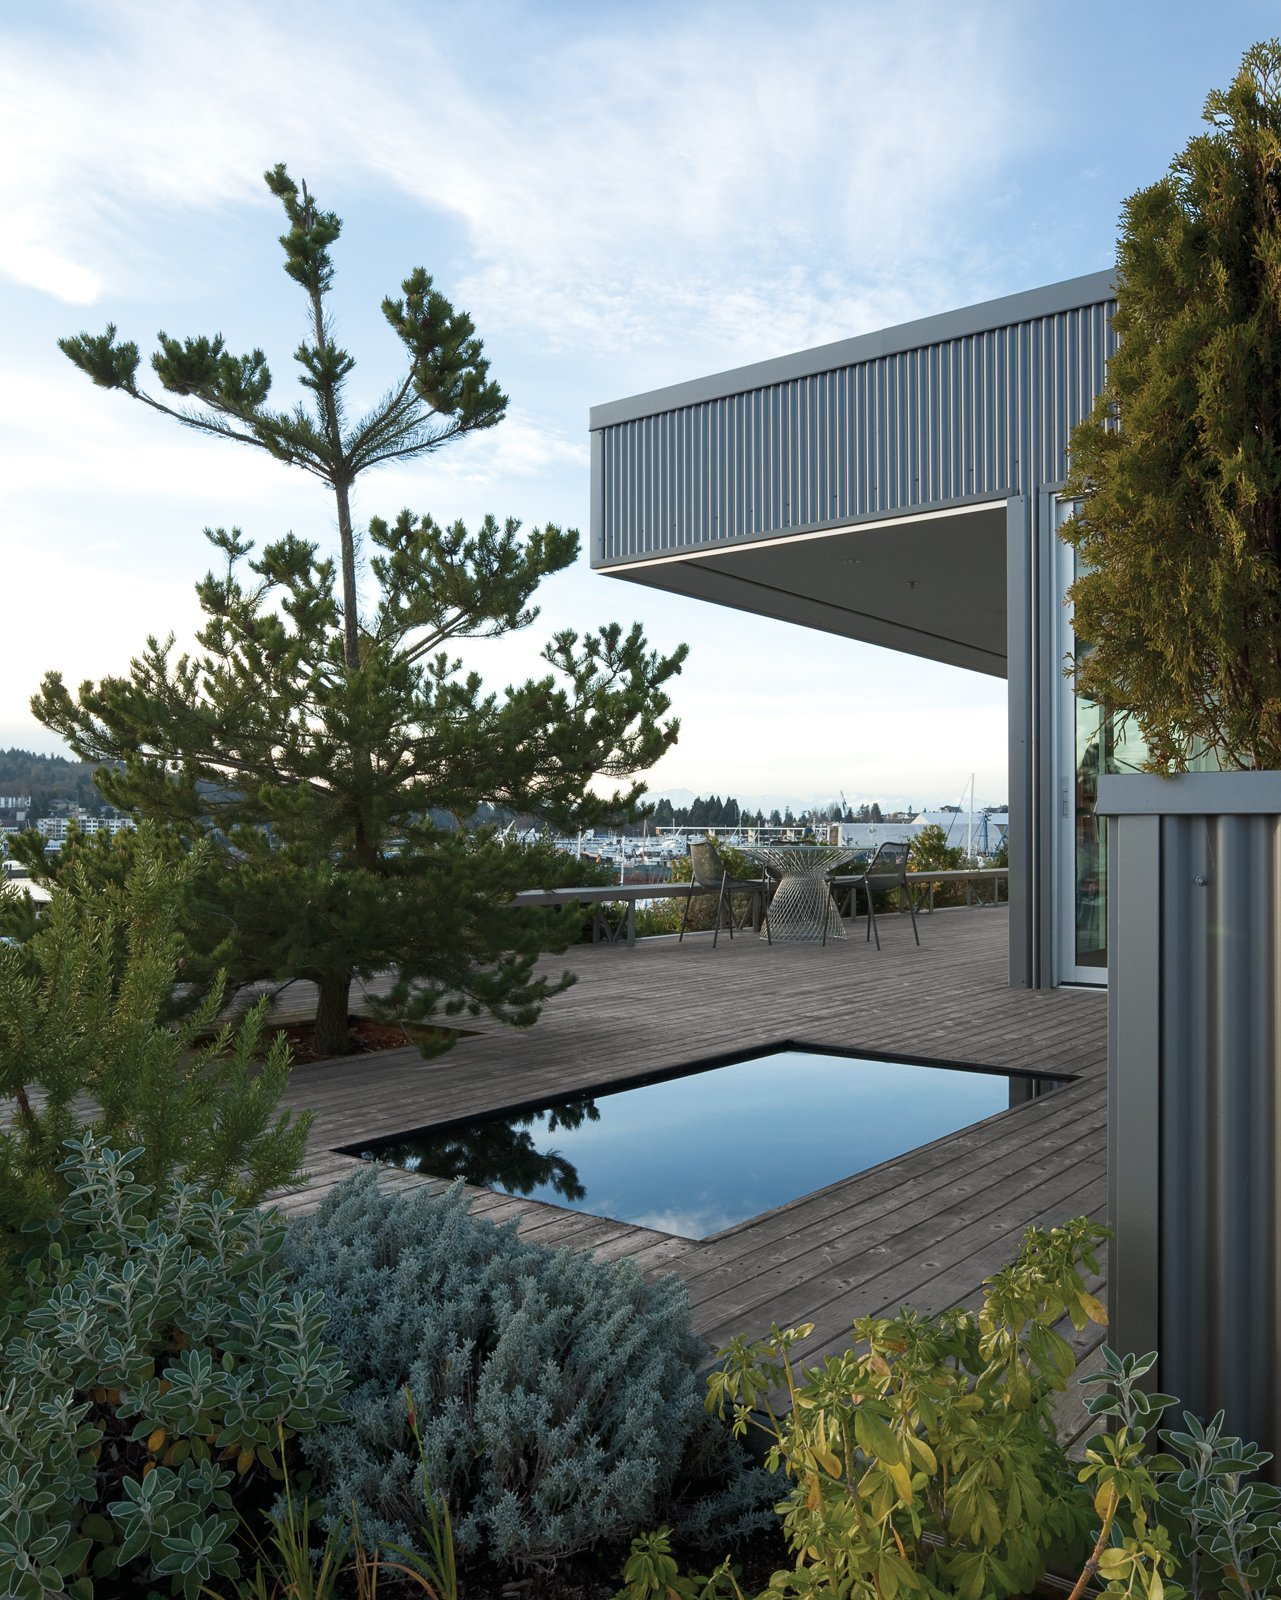 Outdoor, Large Patio, Porch, Deck, Small Pools, Tubs, Shower, Wood Patio, Porch, Deck, and Trees The reflecting pool is surrounded by foliage and breathtaking views of the bay.  Photo 10 of 10 in Sky Small